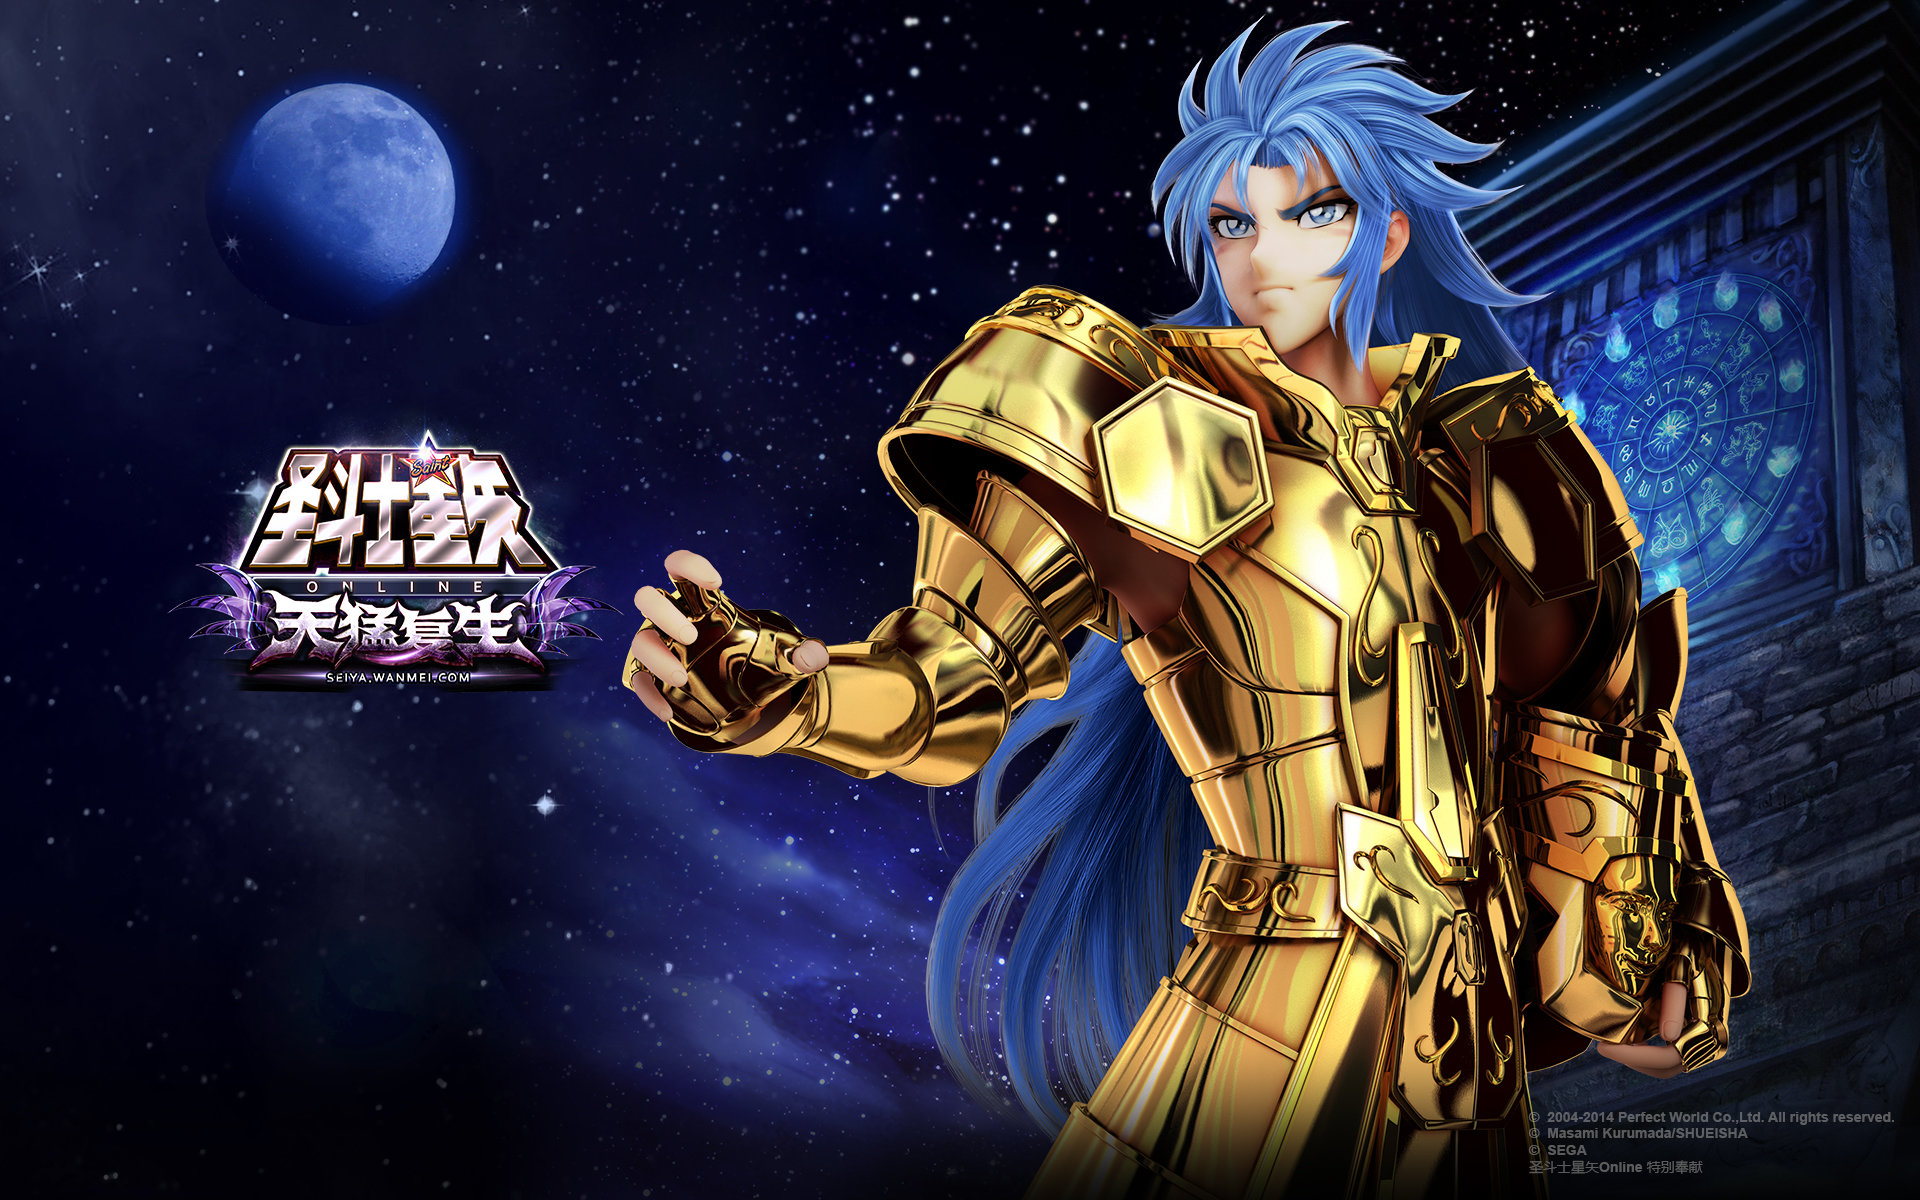 High resolution Saint Seiya hd 1920x1200 wallpaper ID:283900 for computer